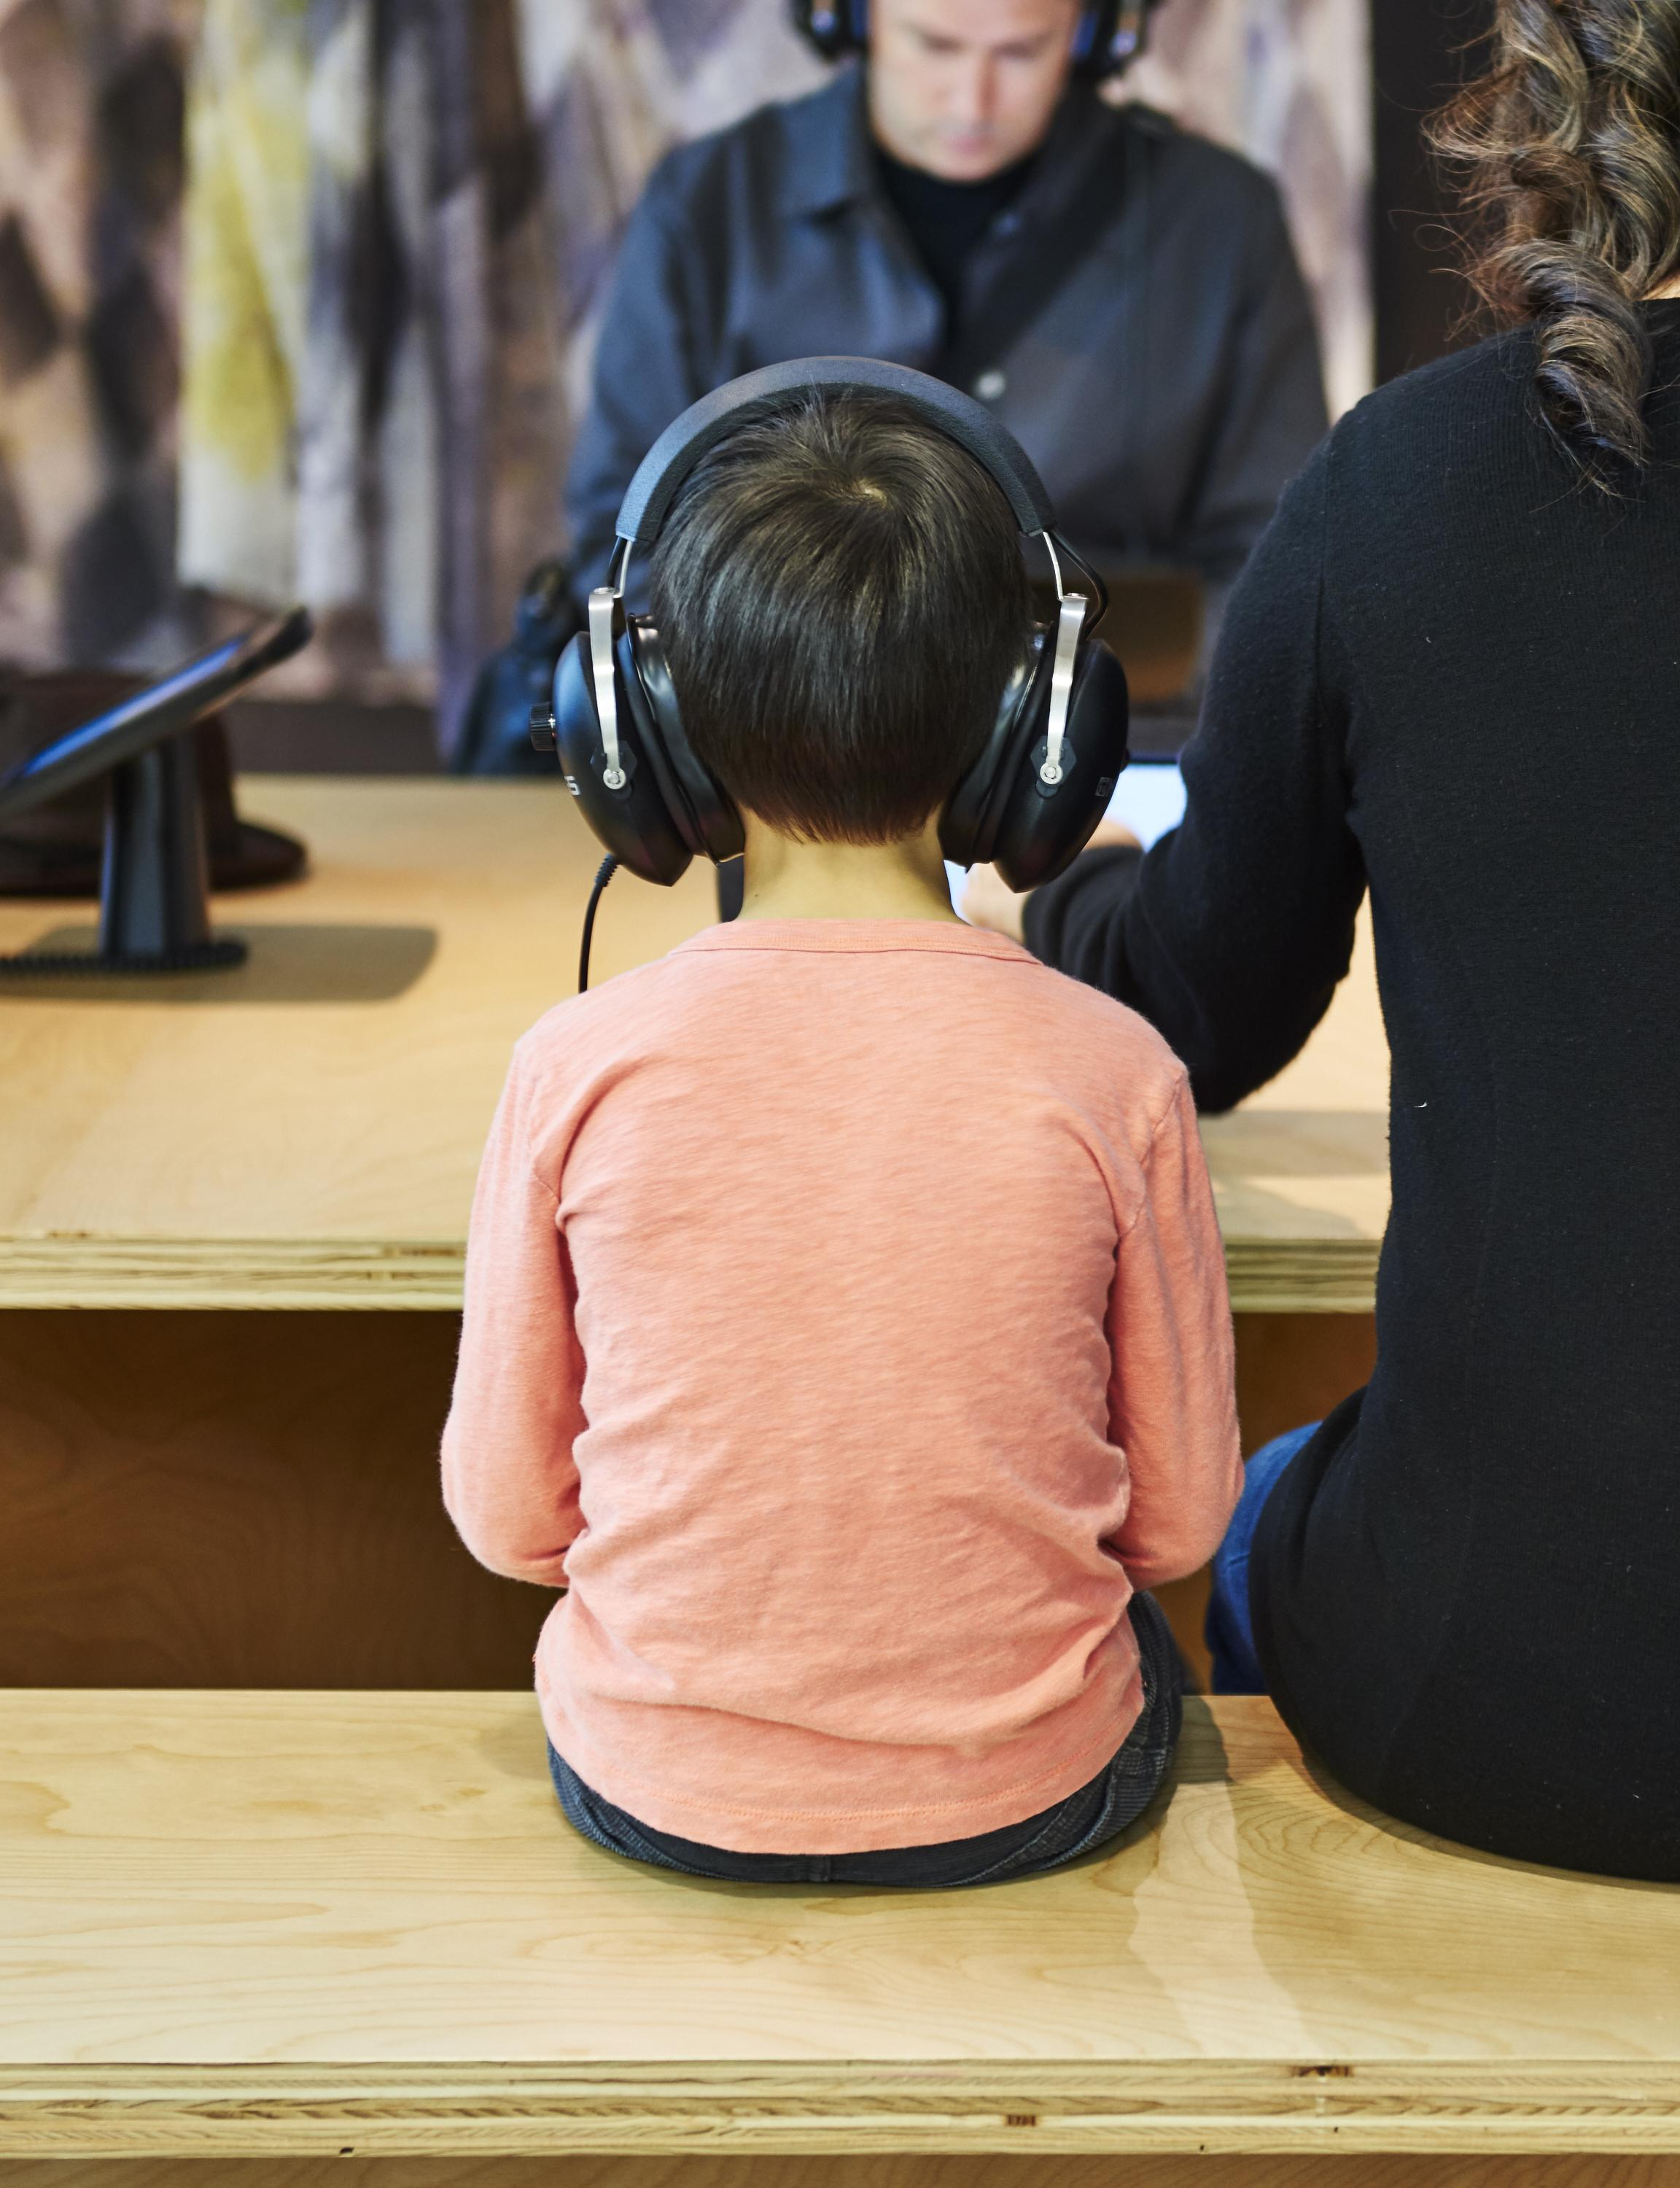 A young child sits with his or her back to the viewer. The child wears oversized headphones and sits next to a woman at a wooden bench and table.